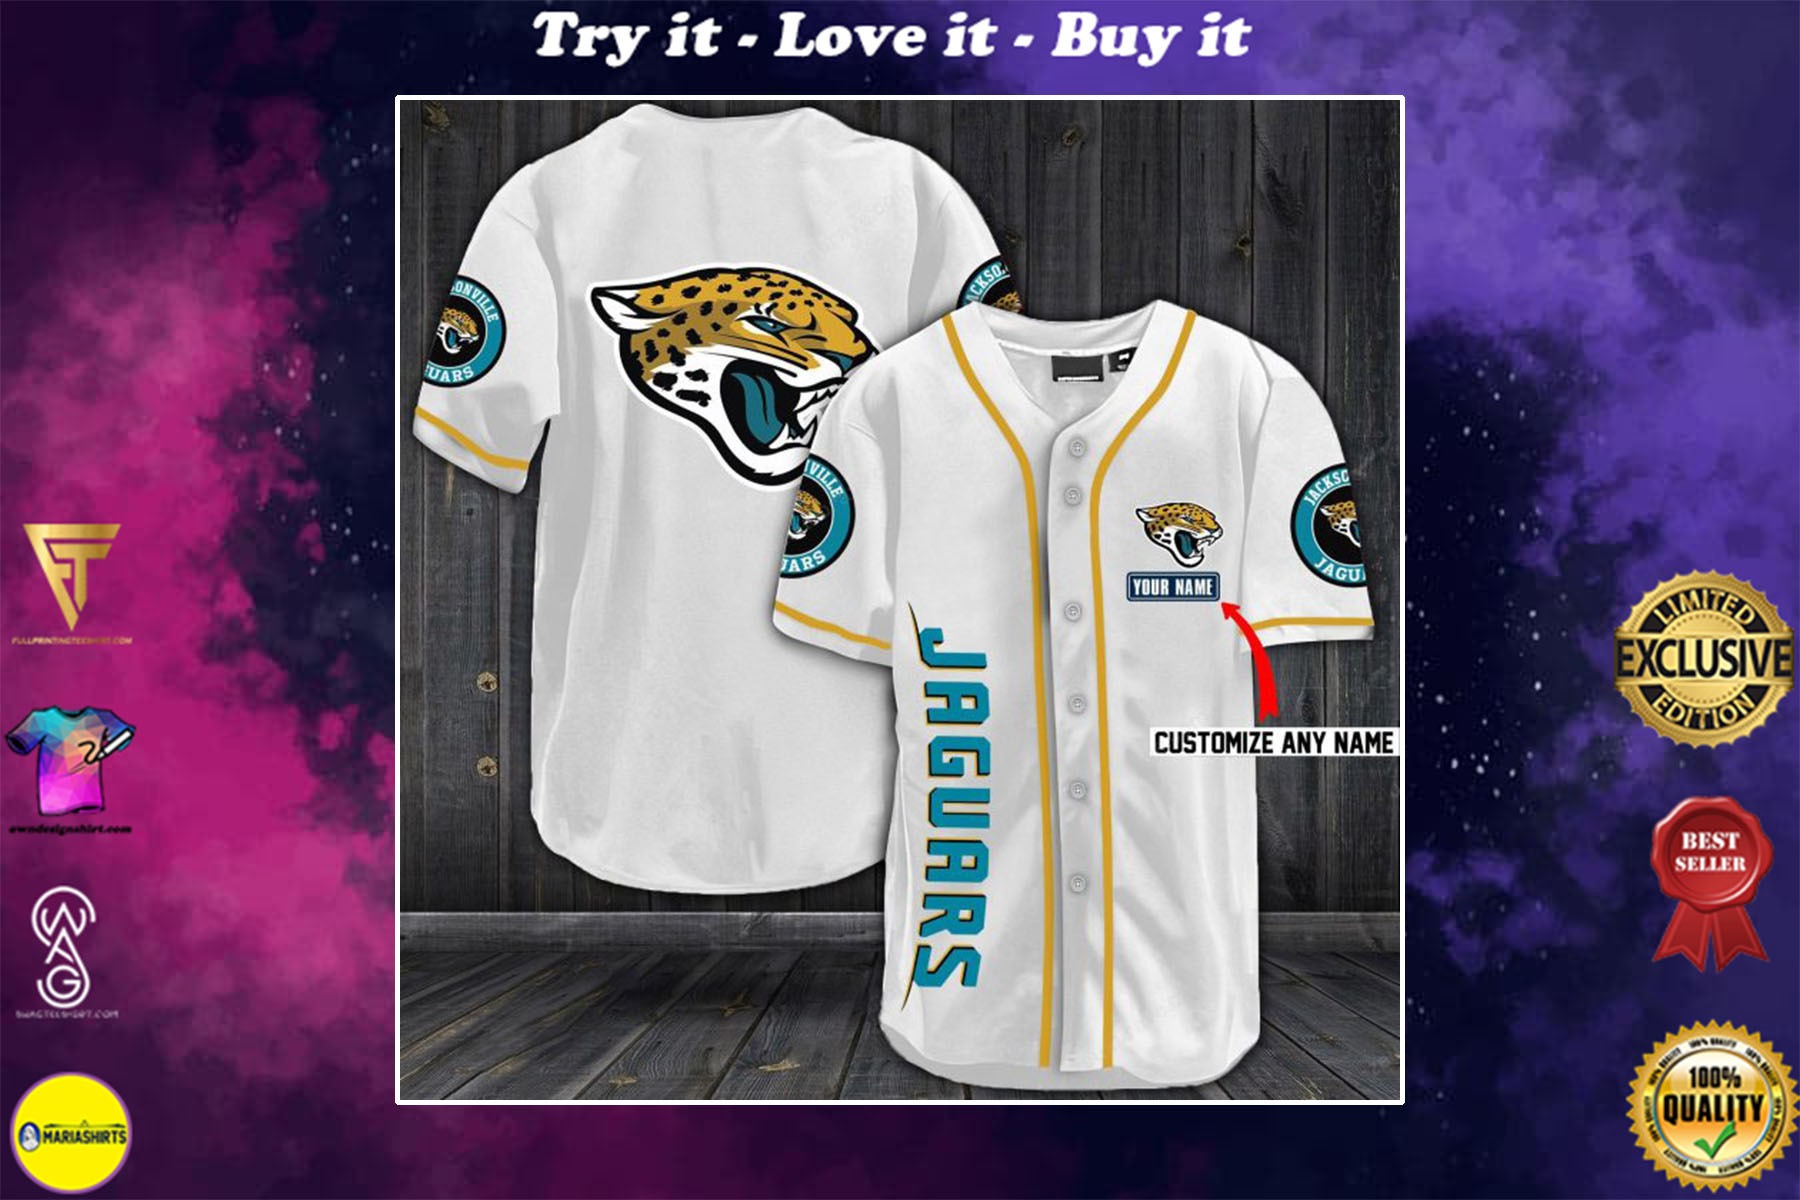 [special edition] personalized name jersey jacksonville jaguars full printing shirt - maria